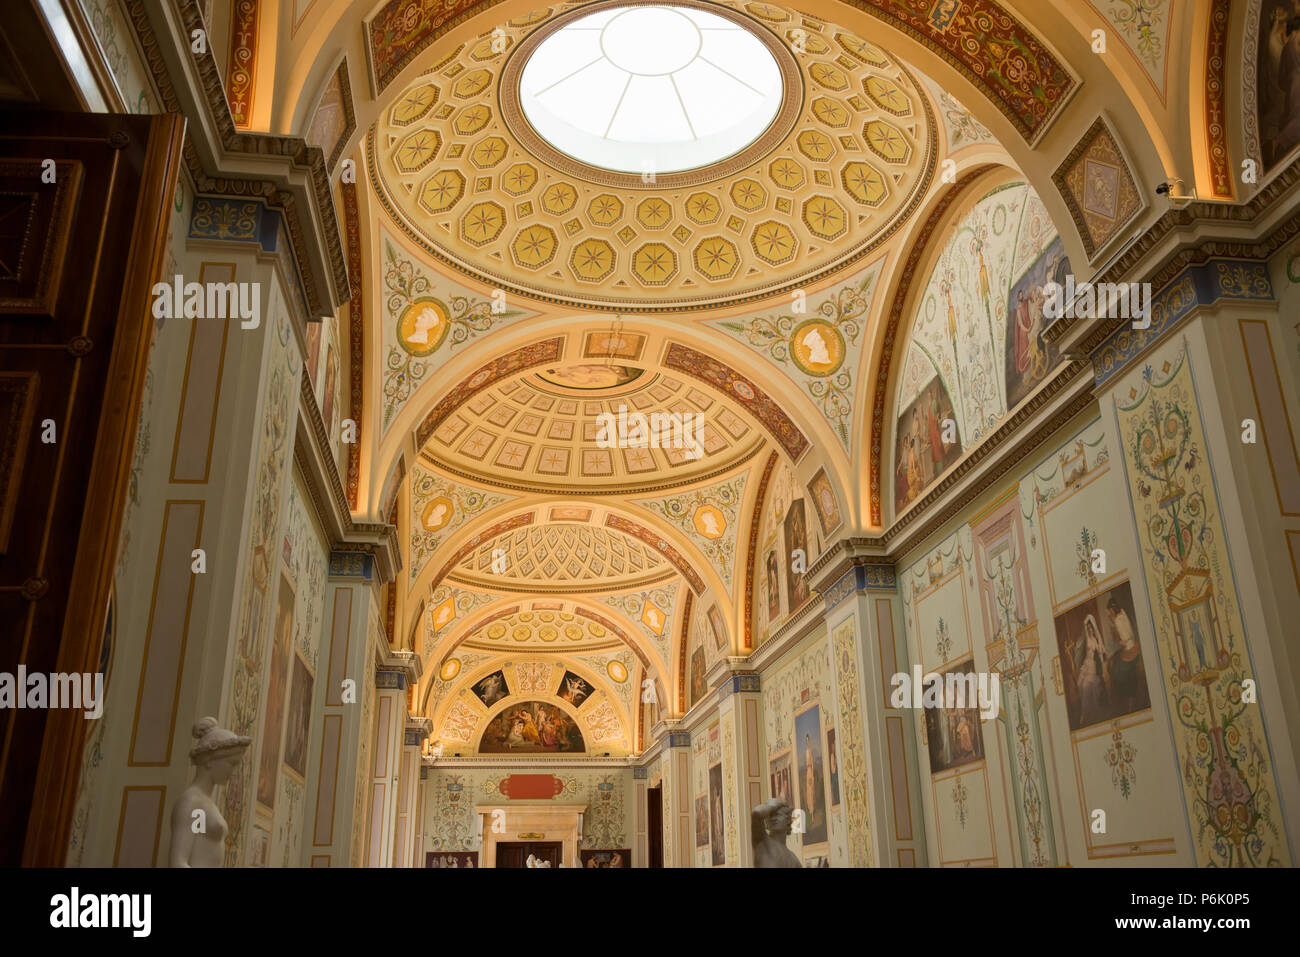 SAINT PETERSBURG, RUSSIA - AUGUST 18, 2017: Interior of State Hermitage in St.Petersburg, Russia. State Hermitage was founded in 1764. Now it is large Stock Photo